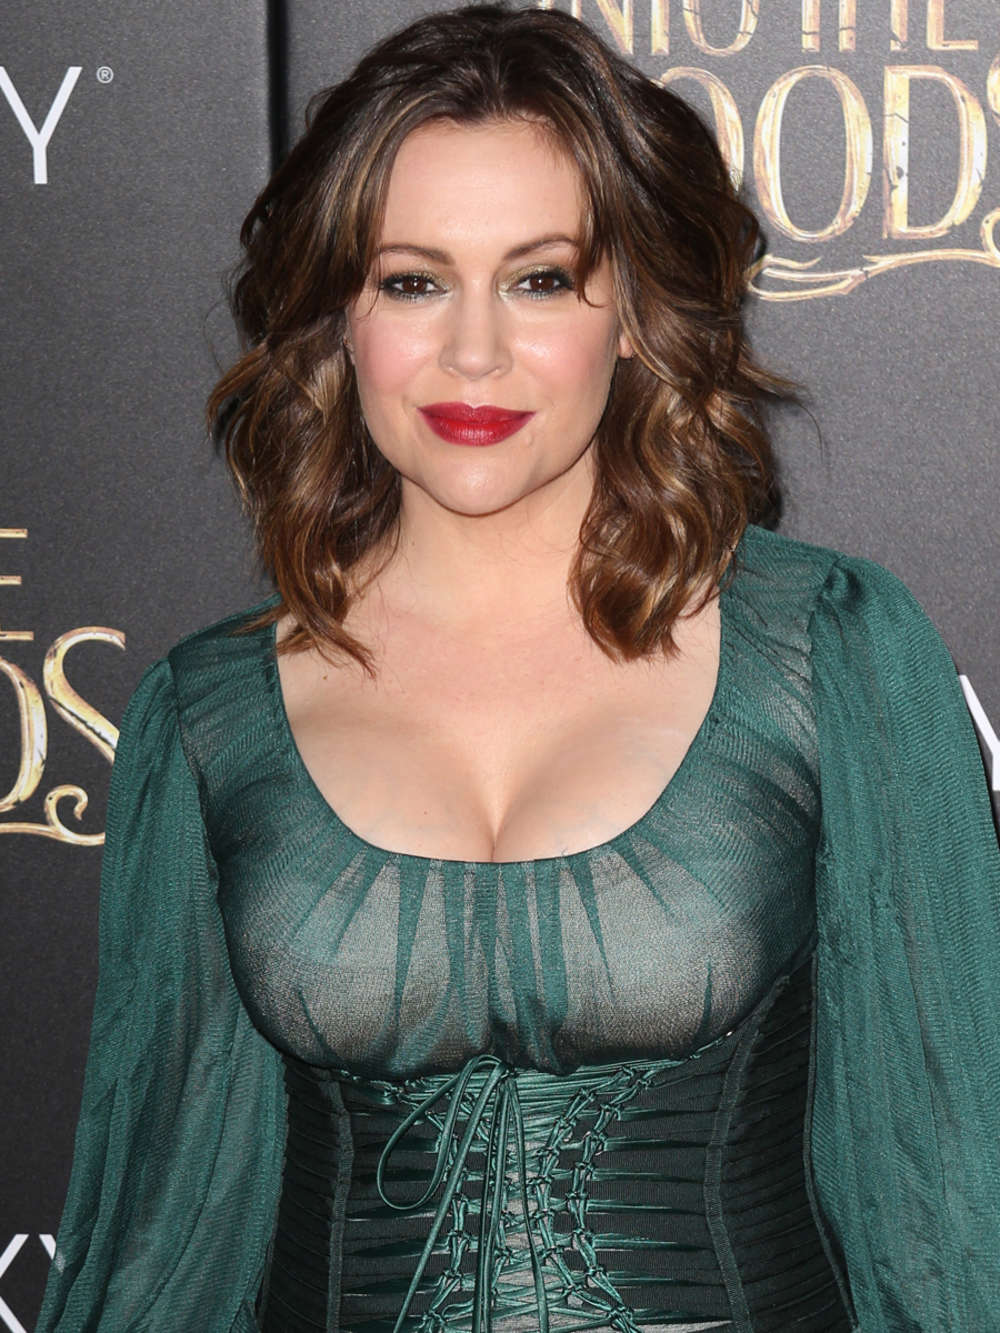 alyssa milano celebrities - photo #43